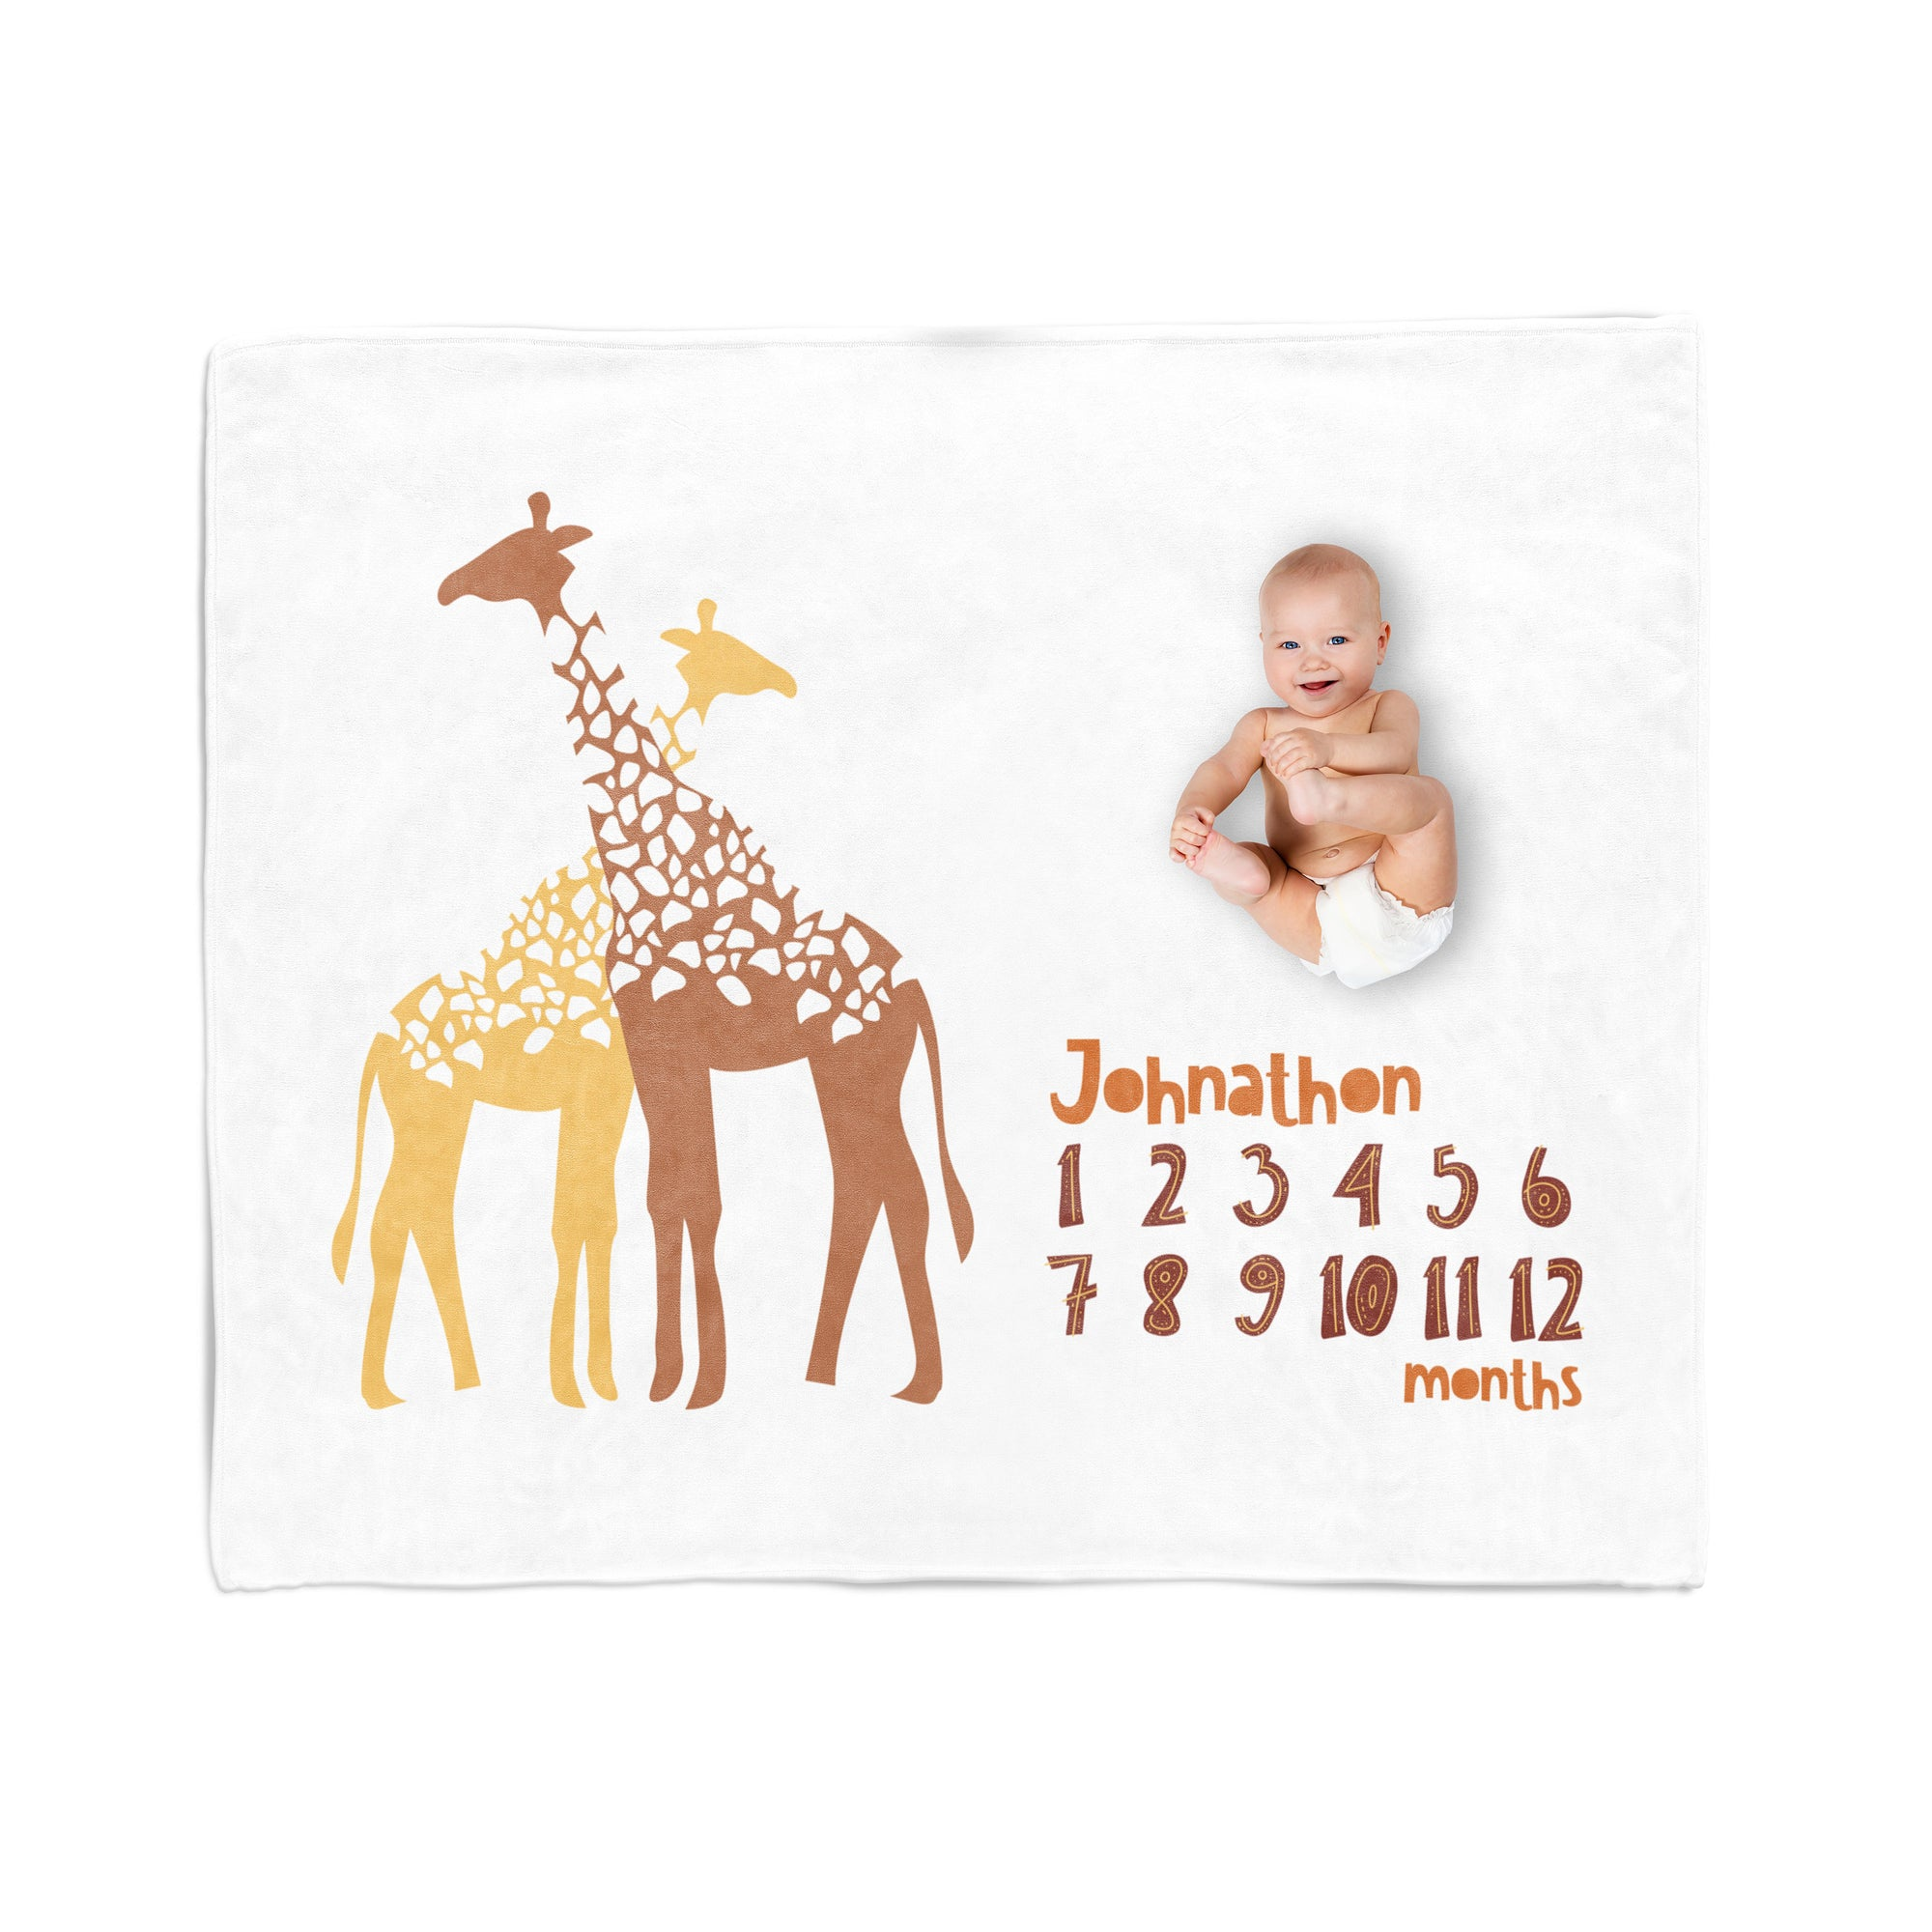 Personalized Baby Blanket, Gender Neutral, Milestone Blanket, Giraffe Safari Nursery